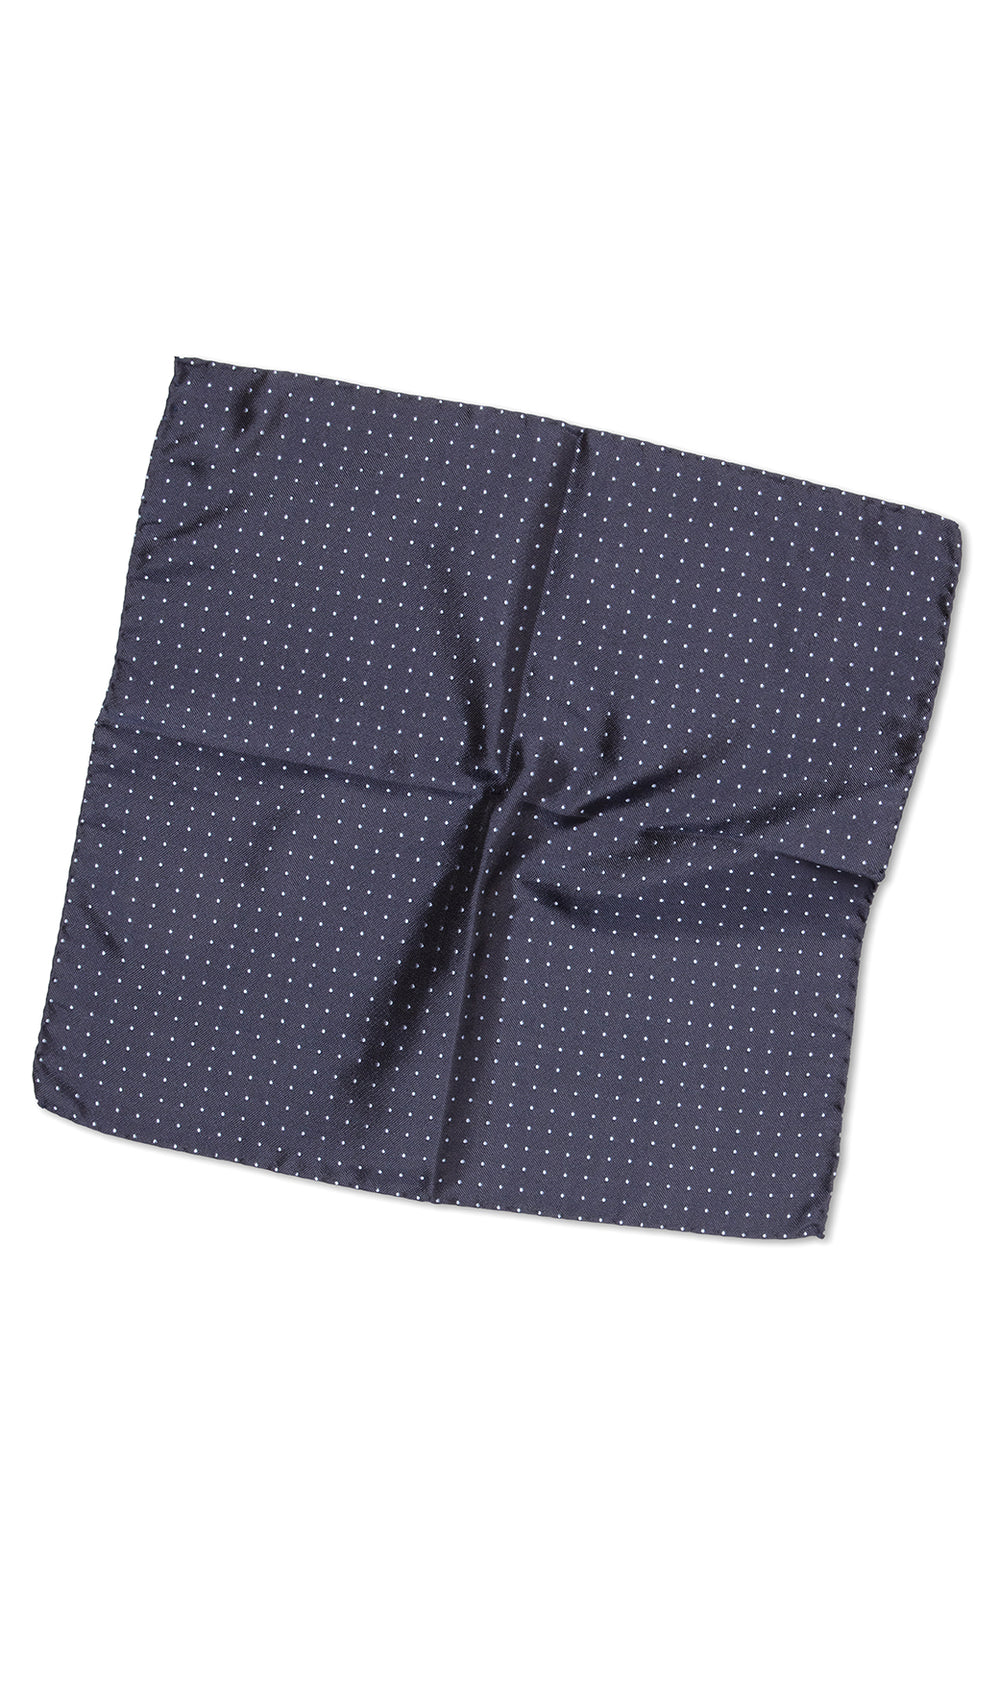 Cantini Navy Blue Dot Pocket Square - MCM Studio